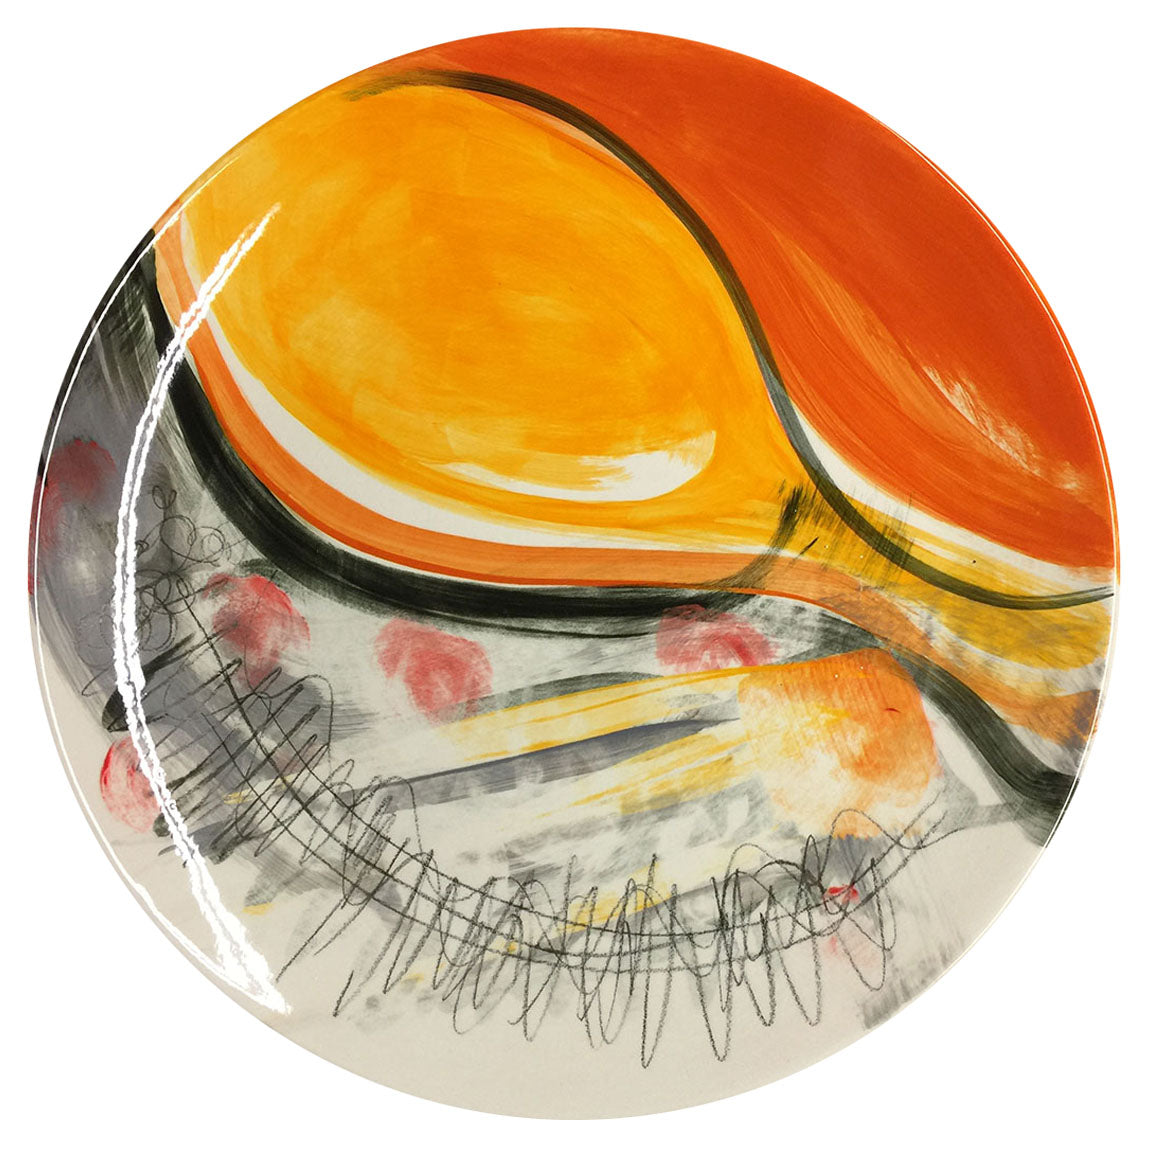 PLATTER A - RED, ORANGE, GREY, GOLD & BLACK - HAND-PAINTED EARTHENWARE